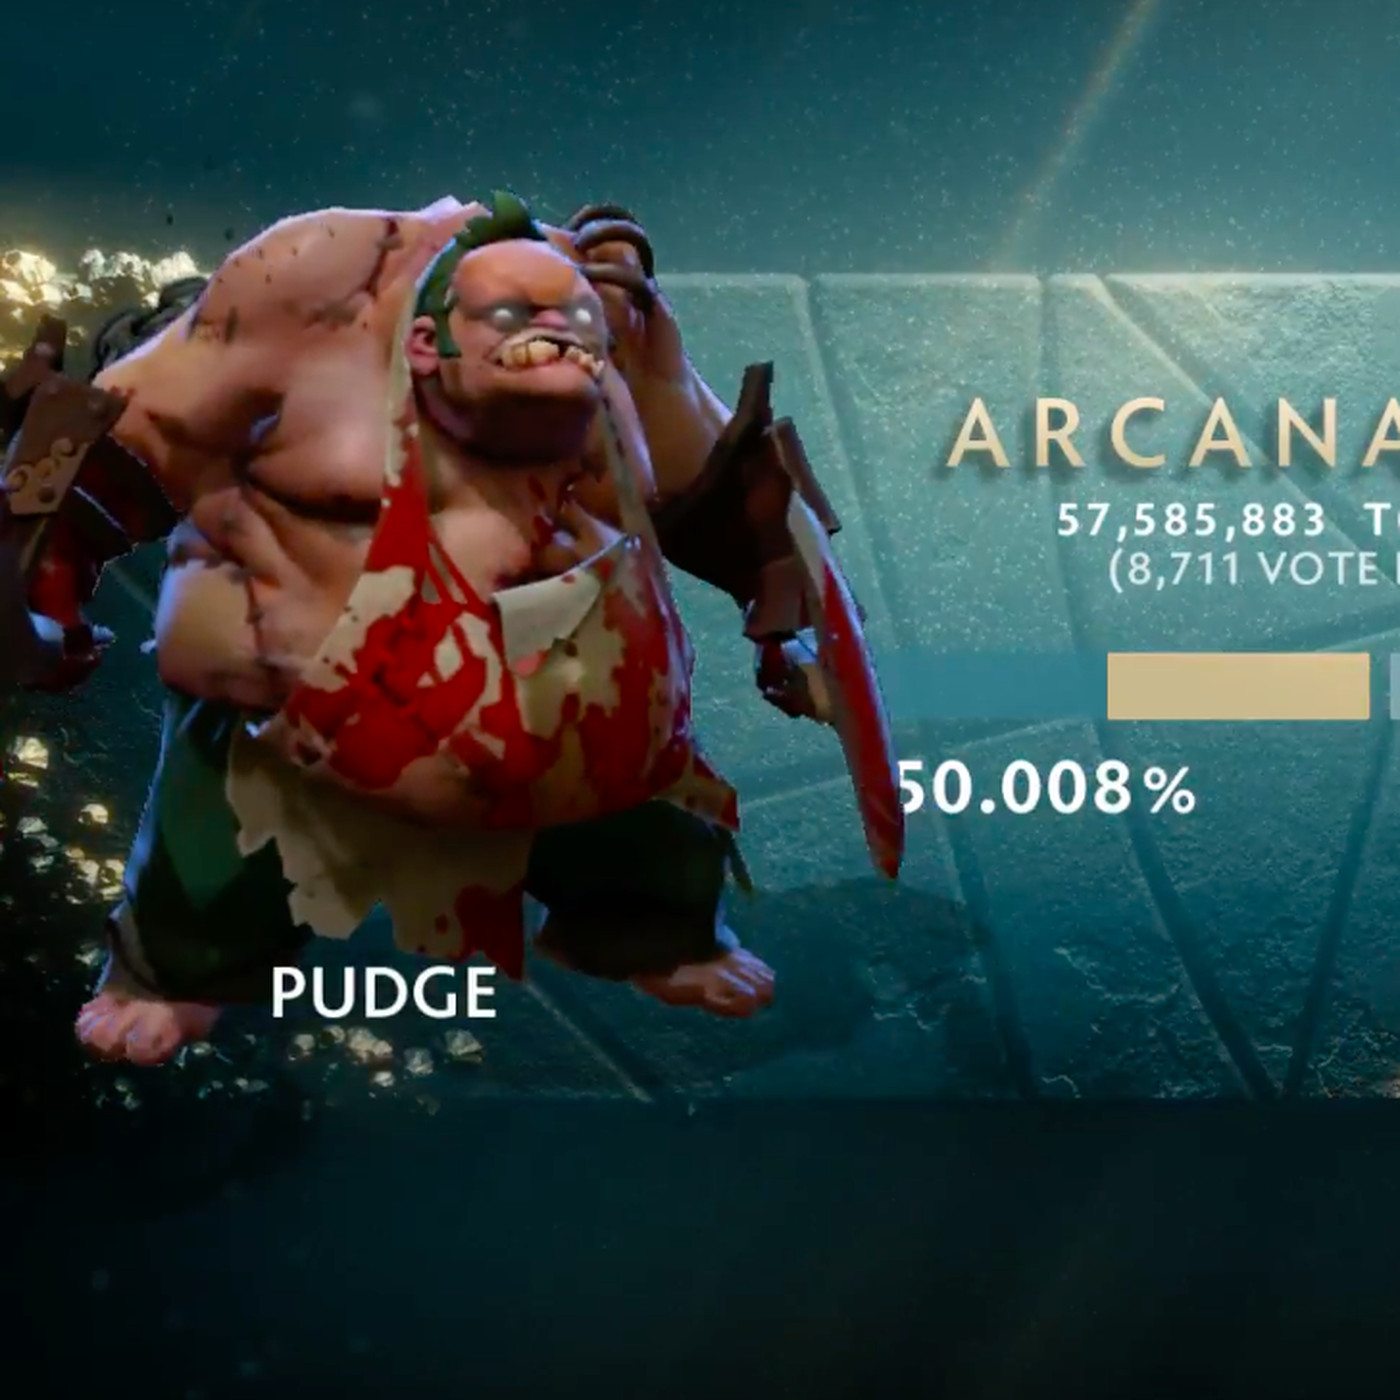 Pudge beats Rubick in Arcana vote by mere thousands - The